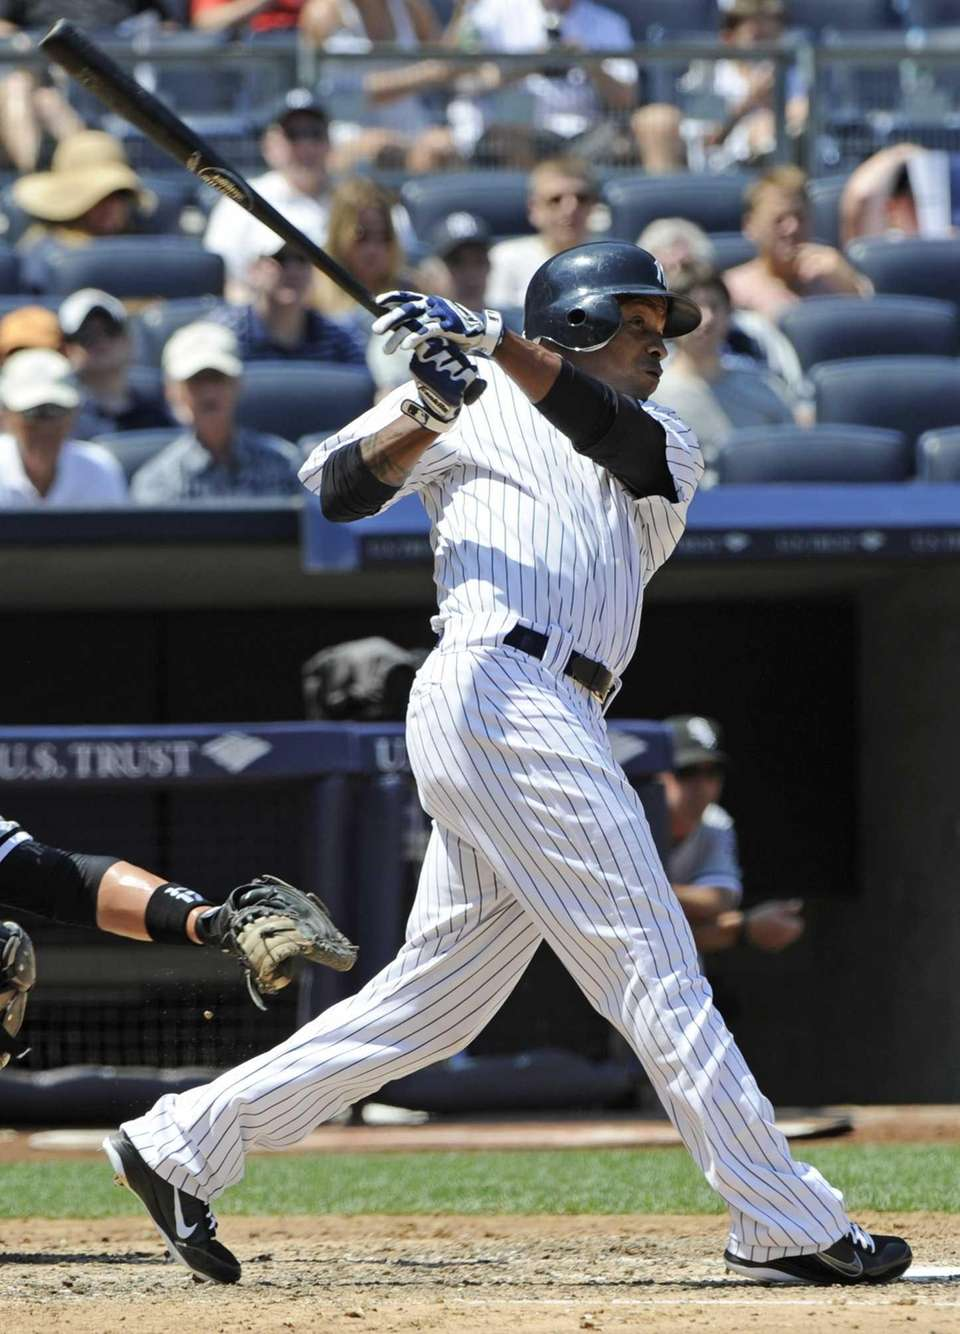 New York Yankees' Dewayne Wise hits a home